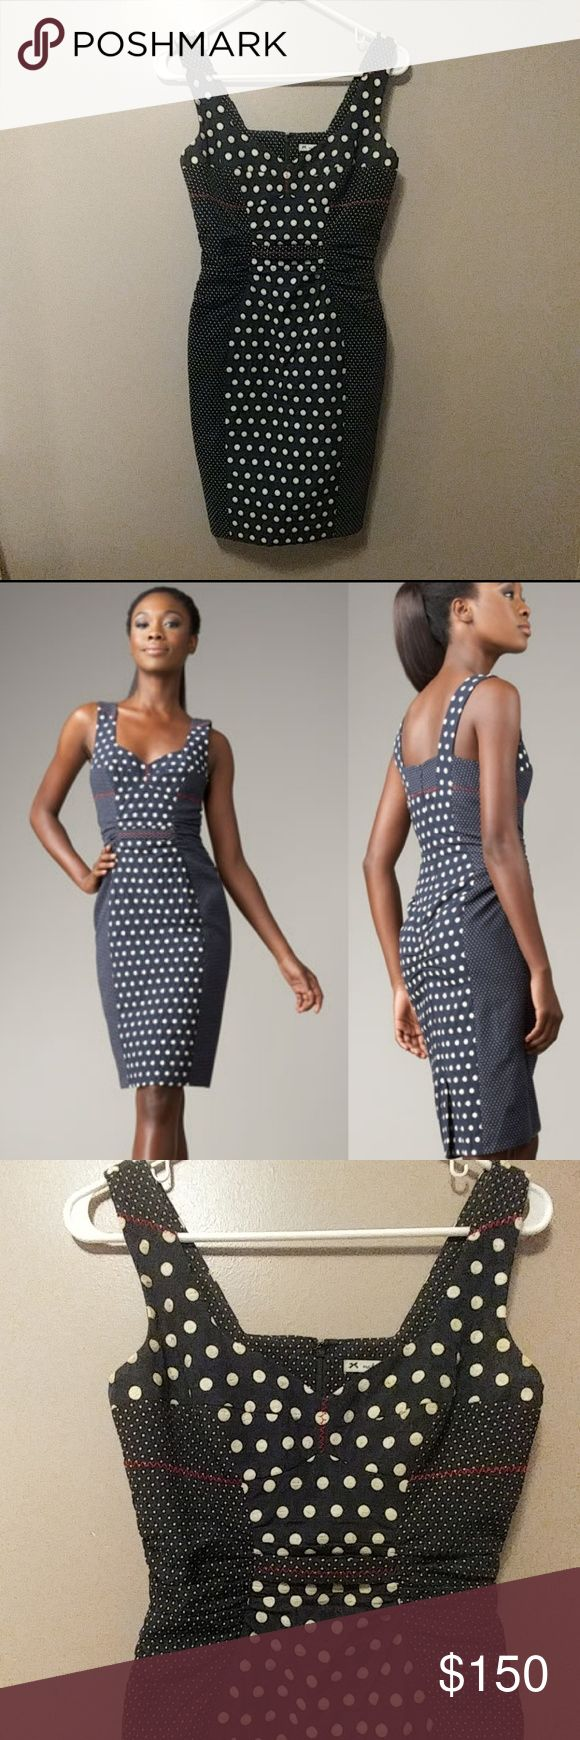 Anthro Yoana Baraschi St Tropez pinup style dress Yoana Baraschi St Tropez pinup style dress. Knockout details on this gorgeous and rare beauty  Navy with polka dots and red zigzag accent stitching. Sweetheart neckline with seamed bust and wide shoulder straps Contrast band at natural waist. Panel design for slimming effect. Pencil skirt and back kick pleat Euc, gently worn with very slight signs of wear on embroirdered polka dots.  Size 0 15 inches at bust 13 inches at waist 17 inches at…